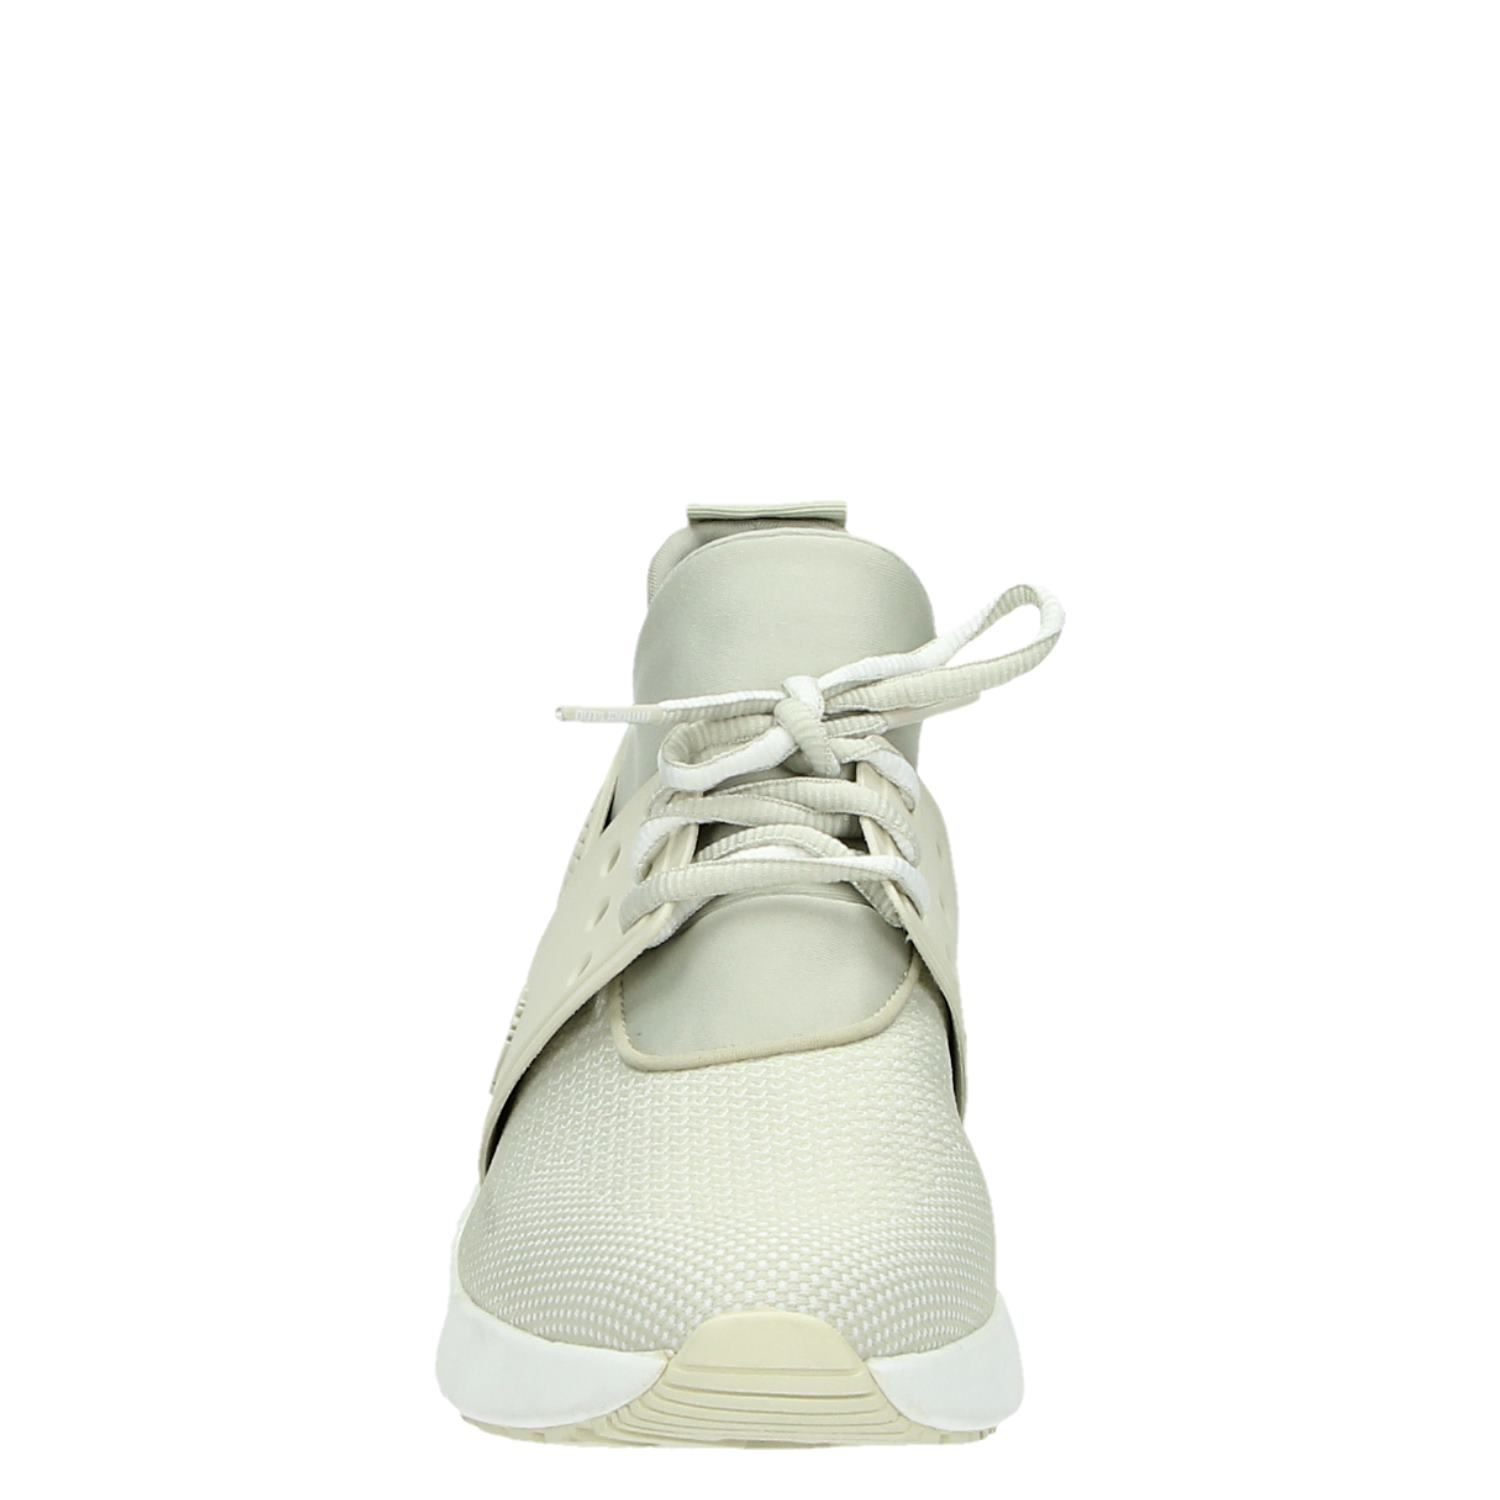 Timberland Kiri Up Baskets Hoge Beige ic88mUVPG